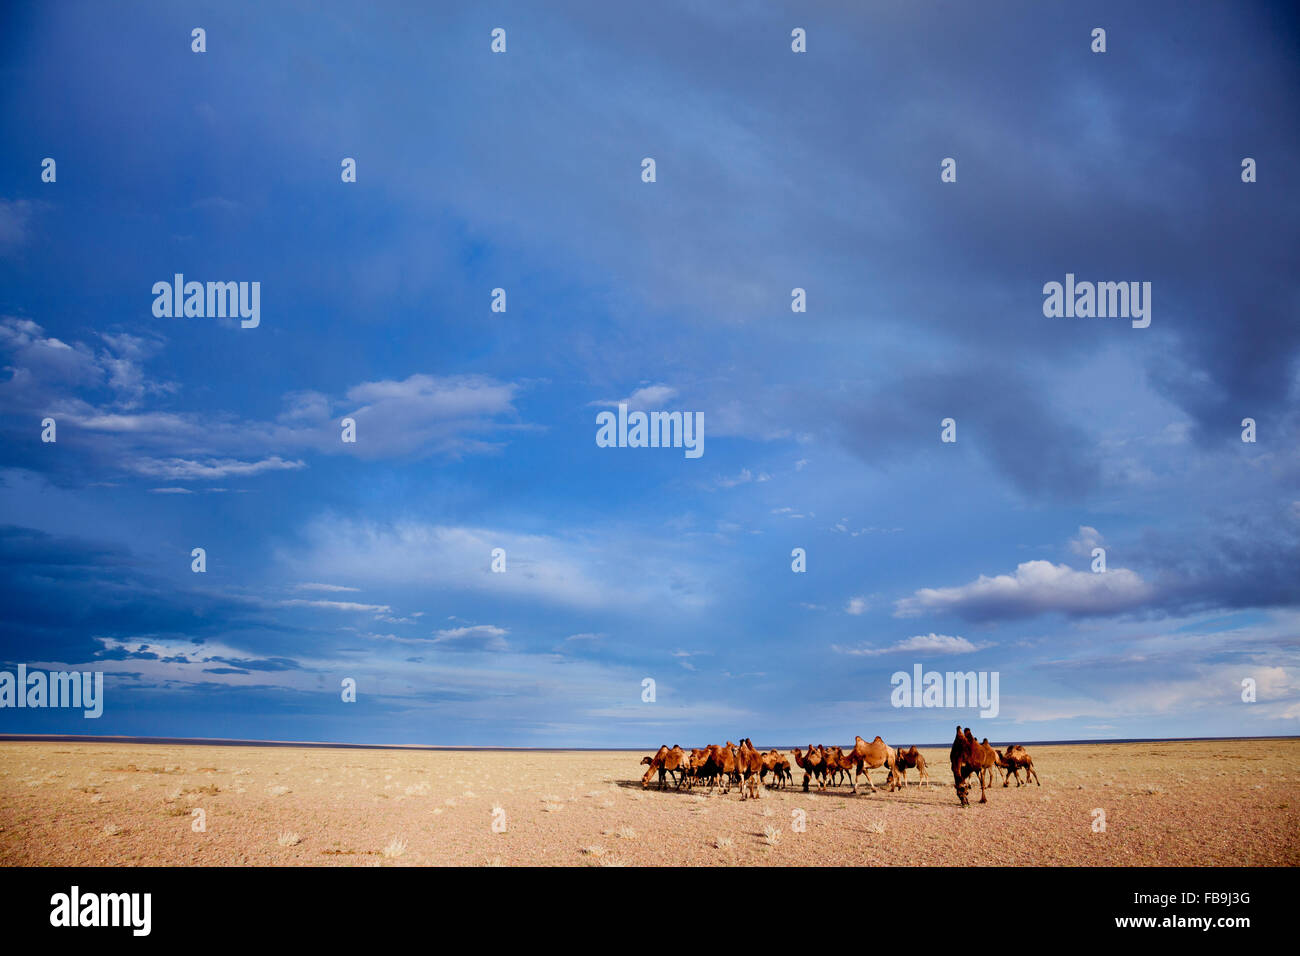 A herd of Bactrian camel in the Gobi Desert, Mongolia. - Stock Image